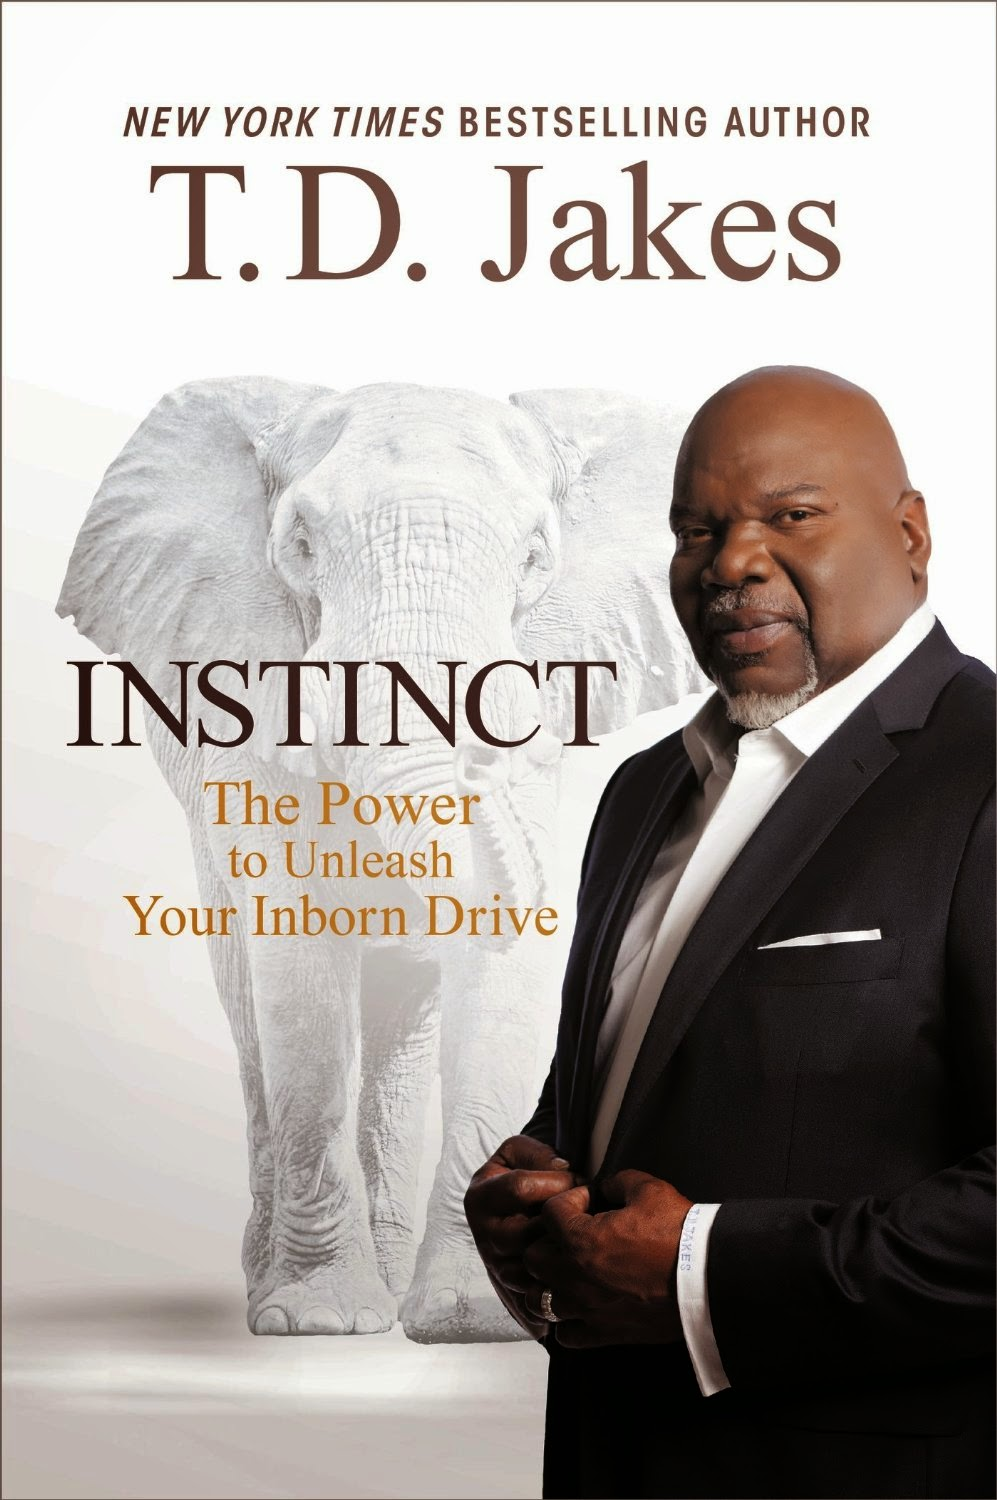 http://www.amazon.com/Instinct-Power-Unleash-Inborn-Drive/dp/1455554049